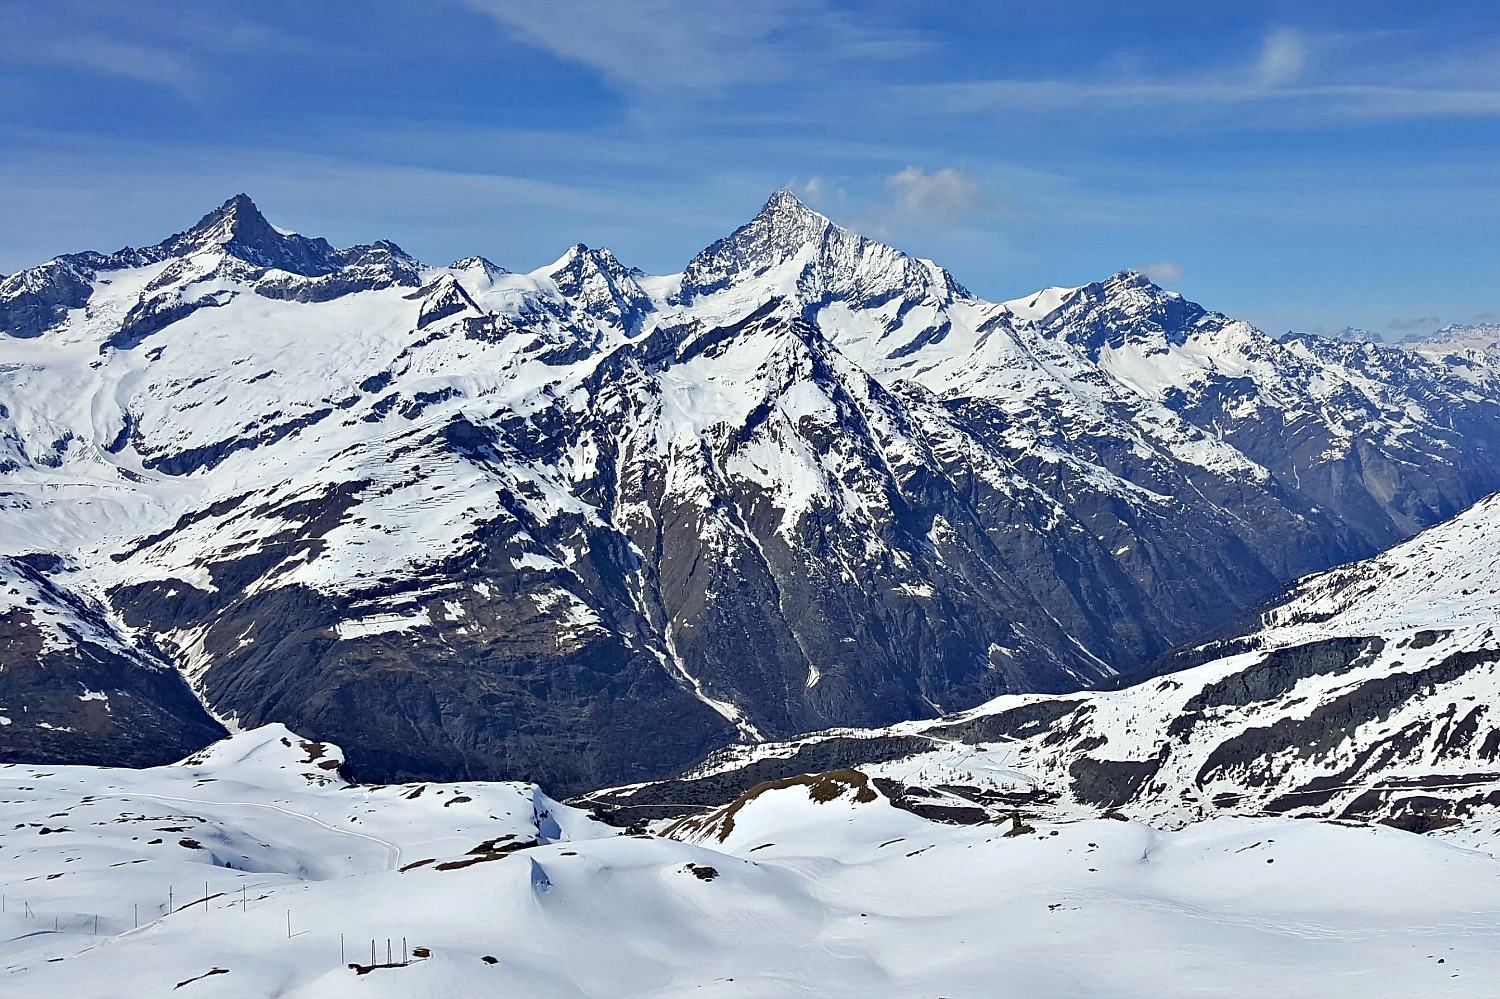 Zermatt Switzerland - view of the mountain range.